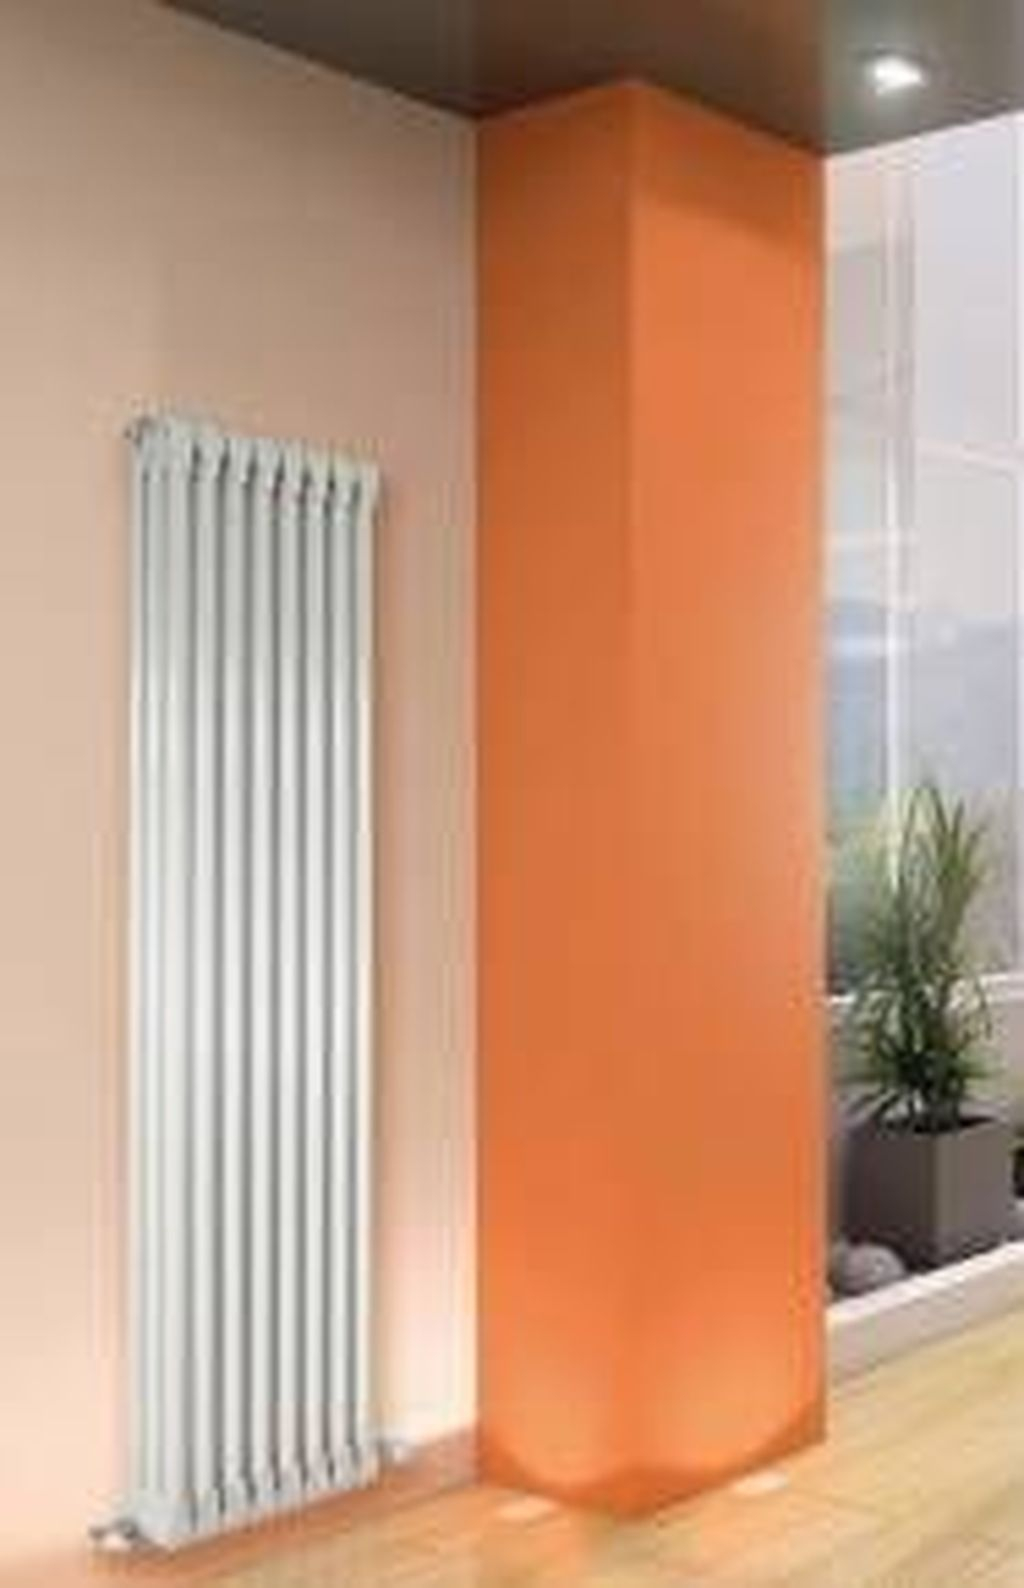 Inexpensive Radiators Design Ideas That Will Spruce Up Your Space 31